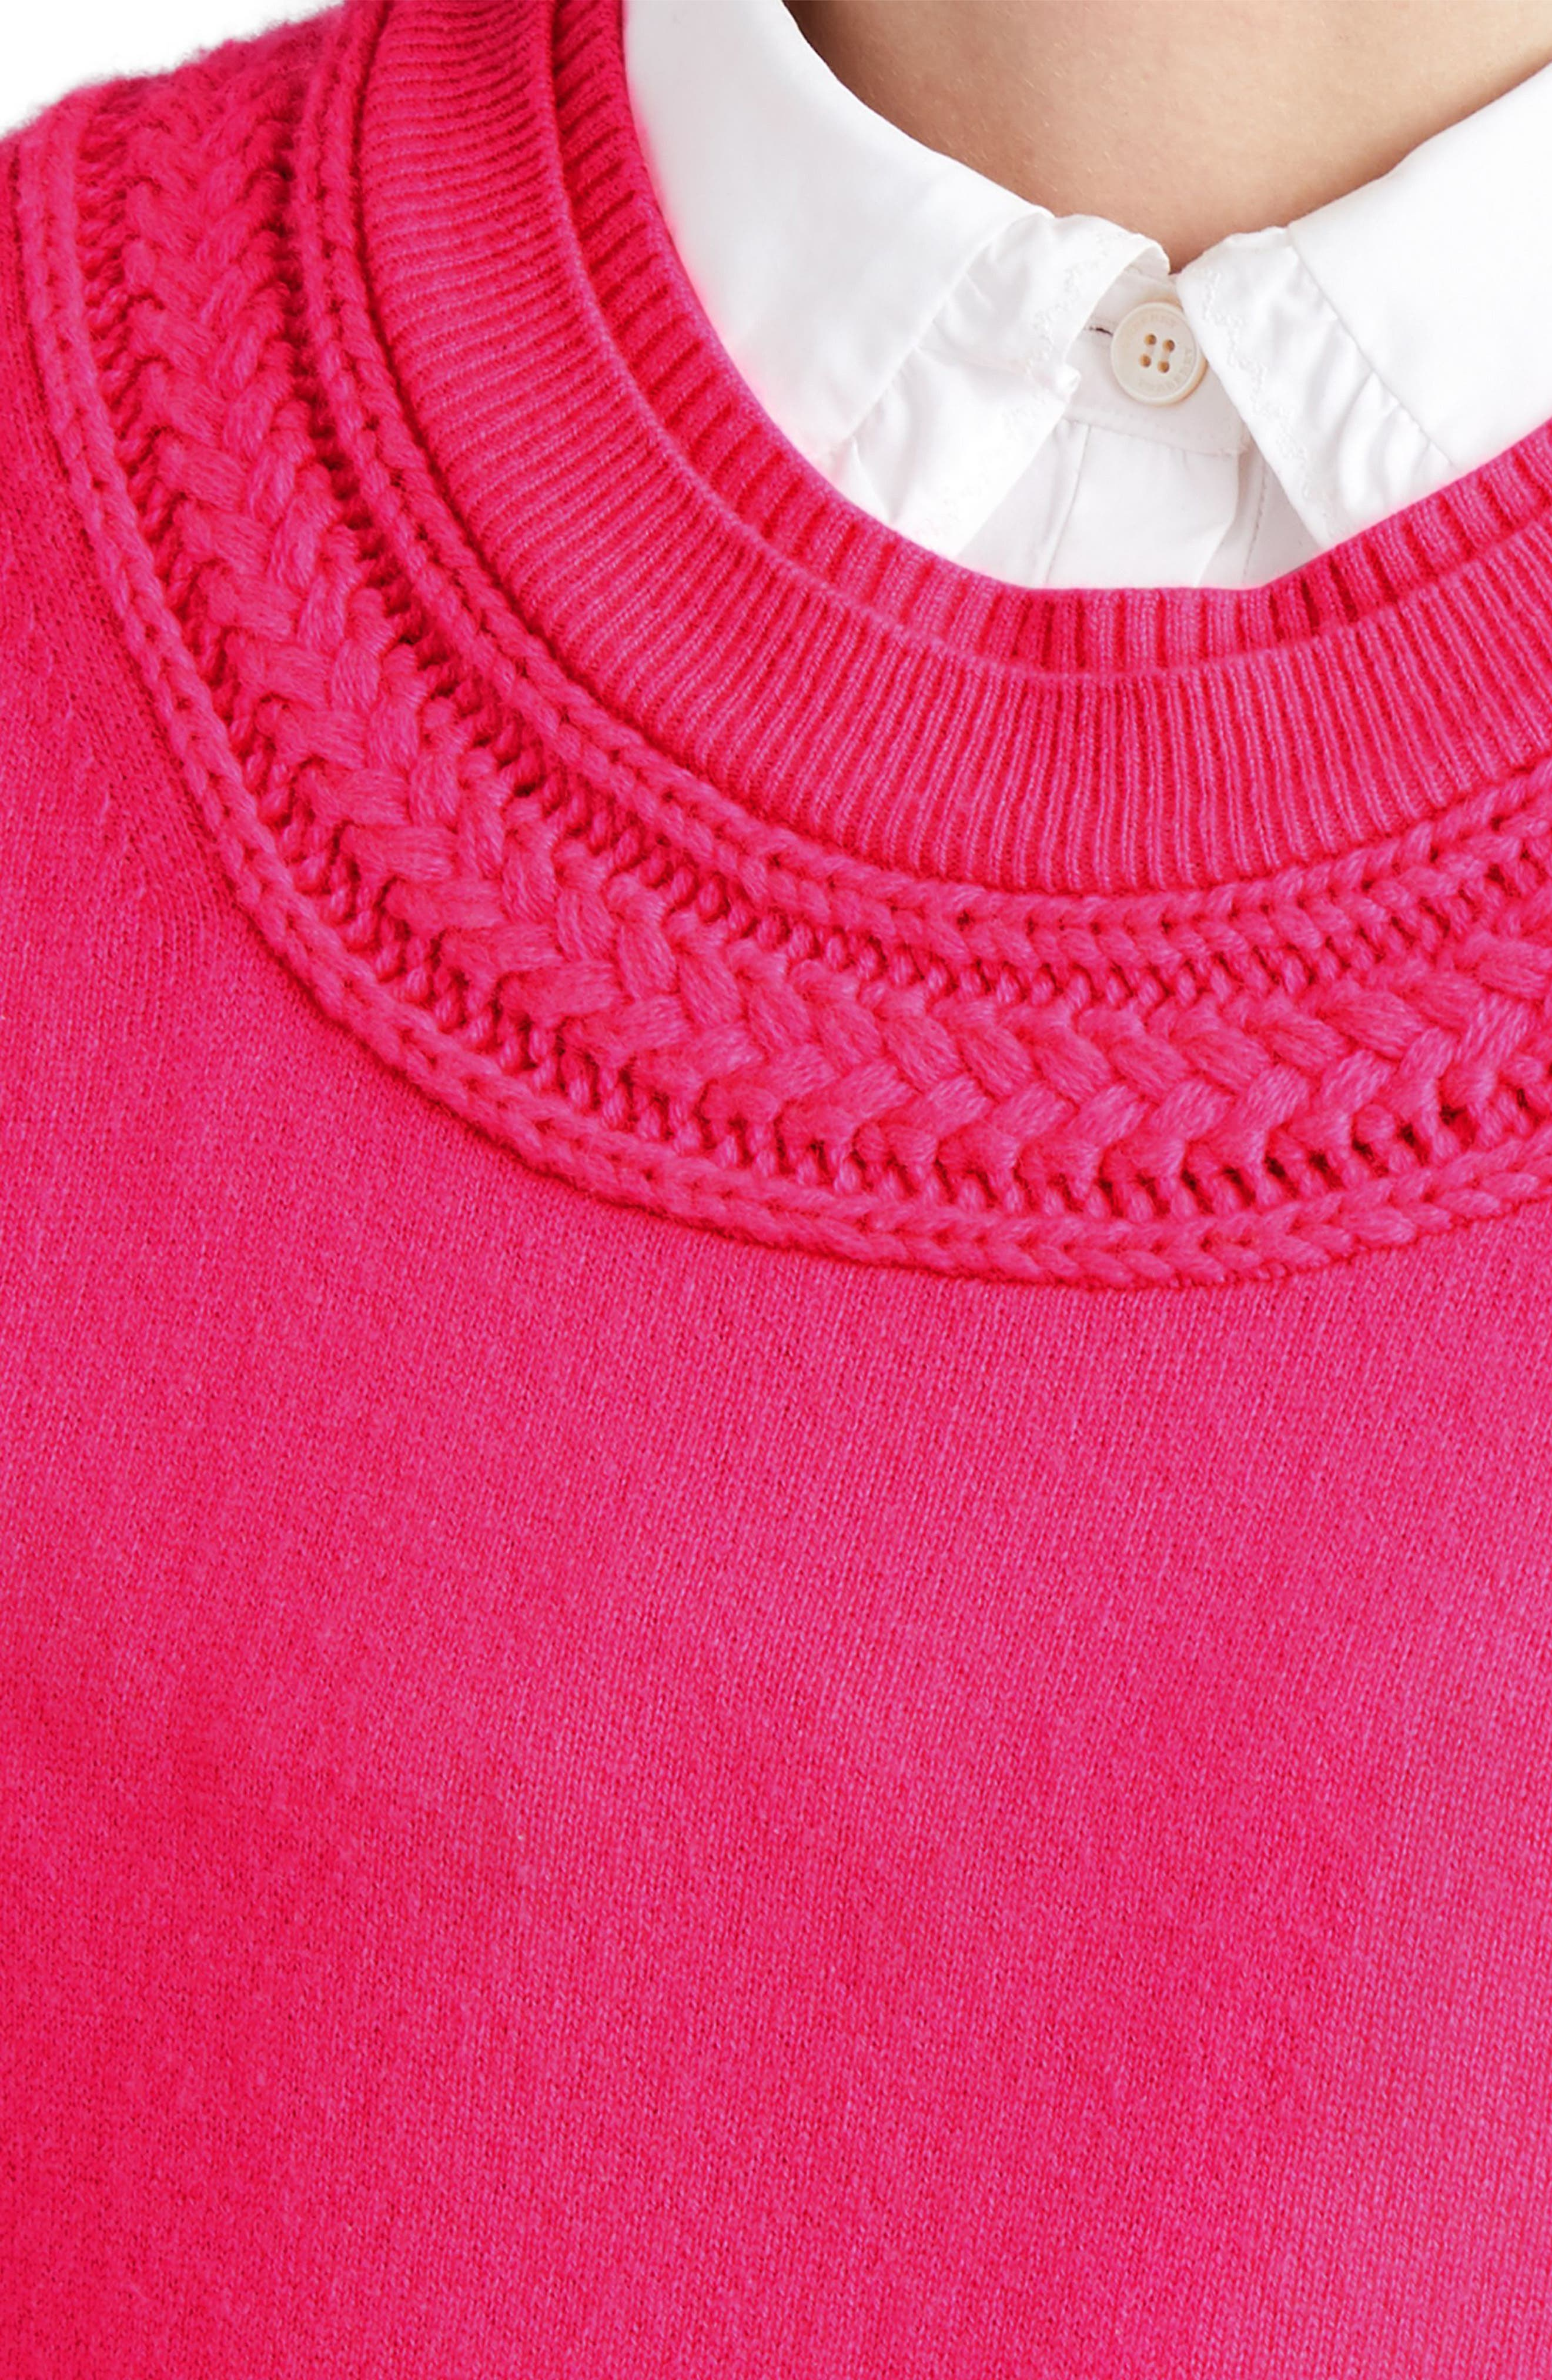 Guadaira Cashmere Sweater,                             Alternate thumbnail 5, color,                             Bright Rose Pink